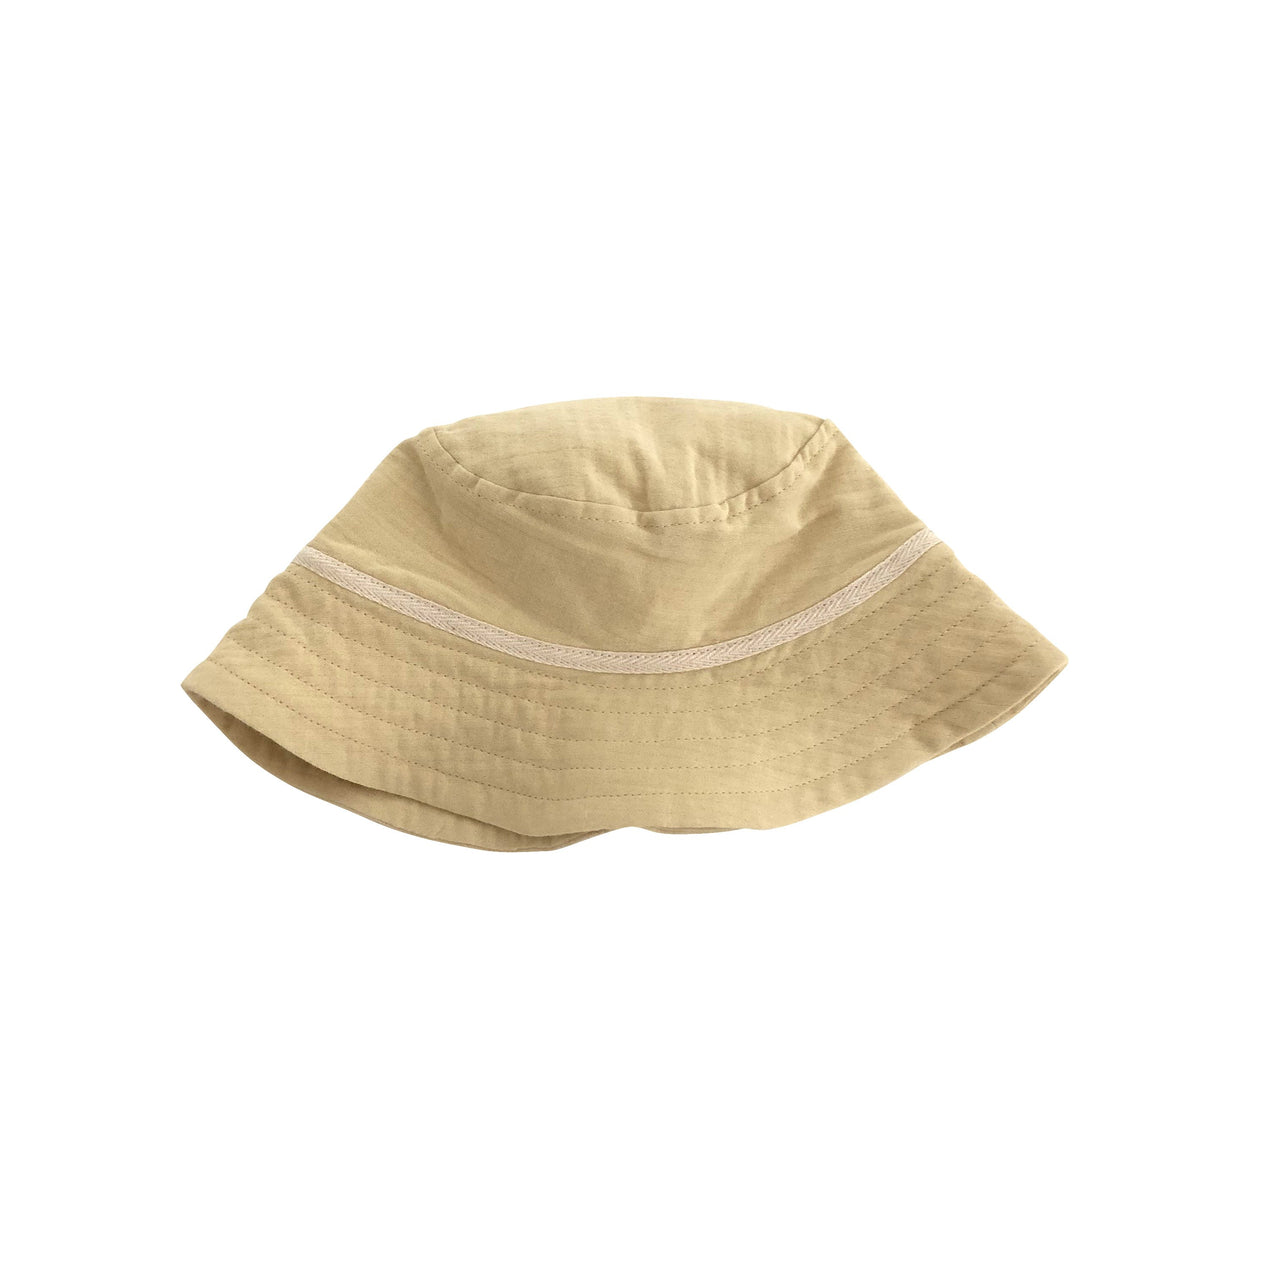 LiiLU Spring Summer 20 SS20 Bucket hat - Honey